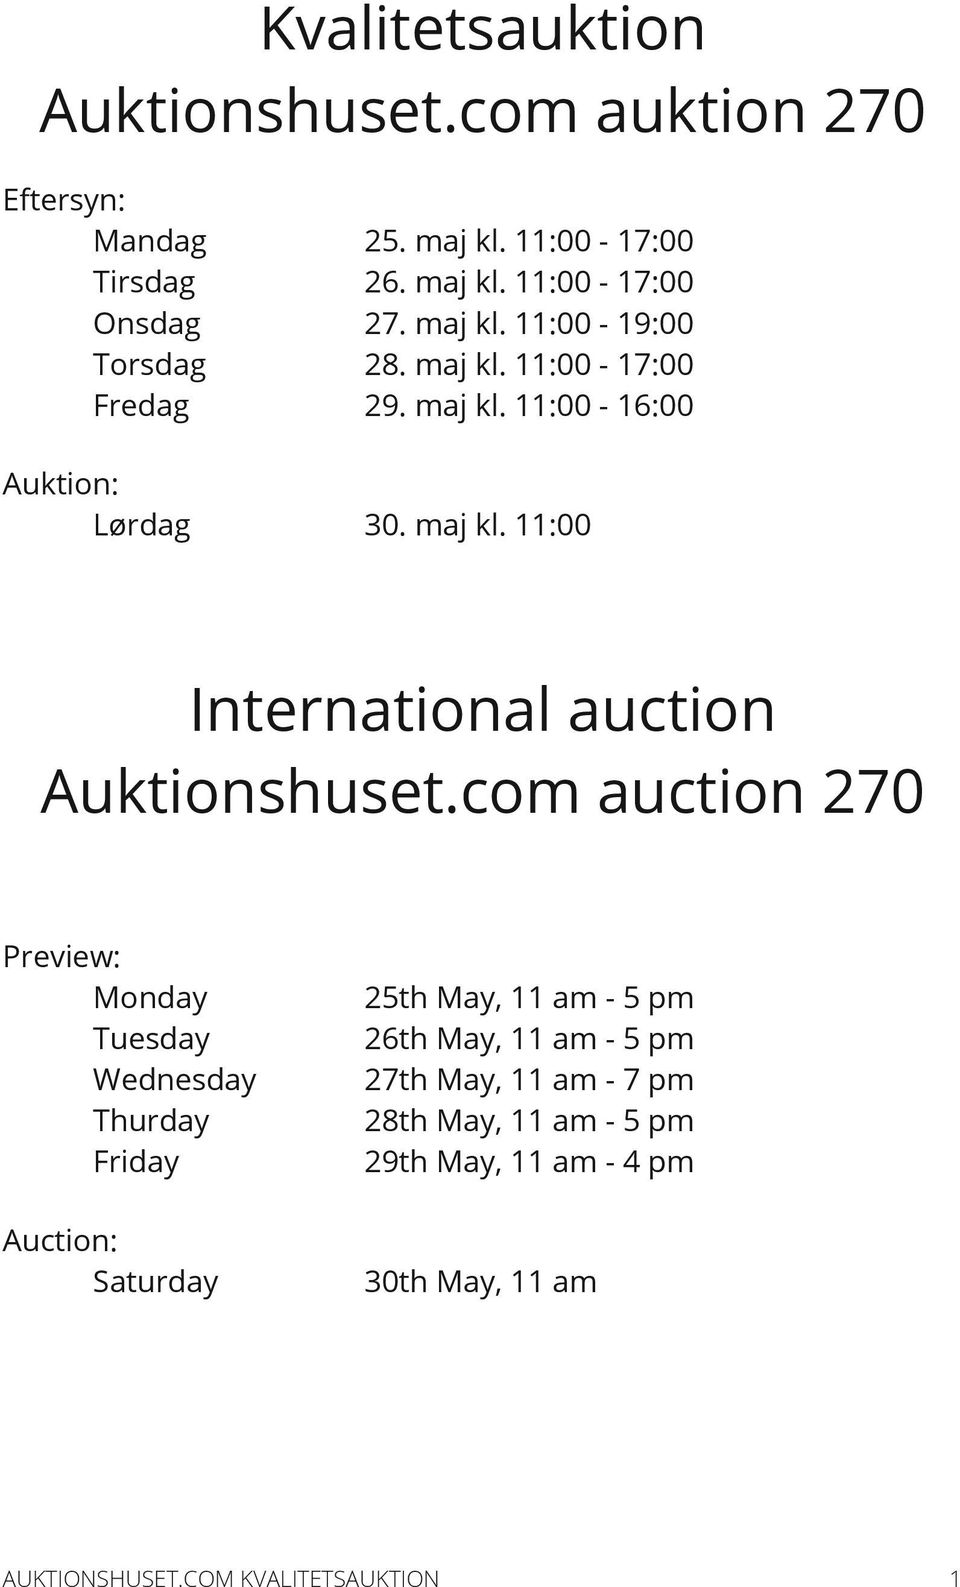 com auction 270 Preview: Monday Tuesday Wednesday Thurday Friday 25th May, 11 am - 5 pm 26th May, 11 am - 5 pm 27th May, 11